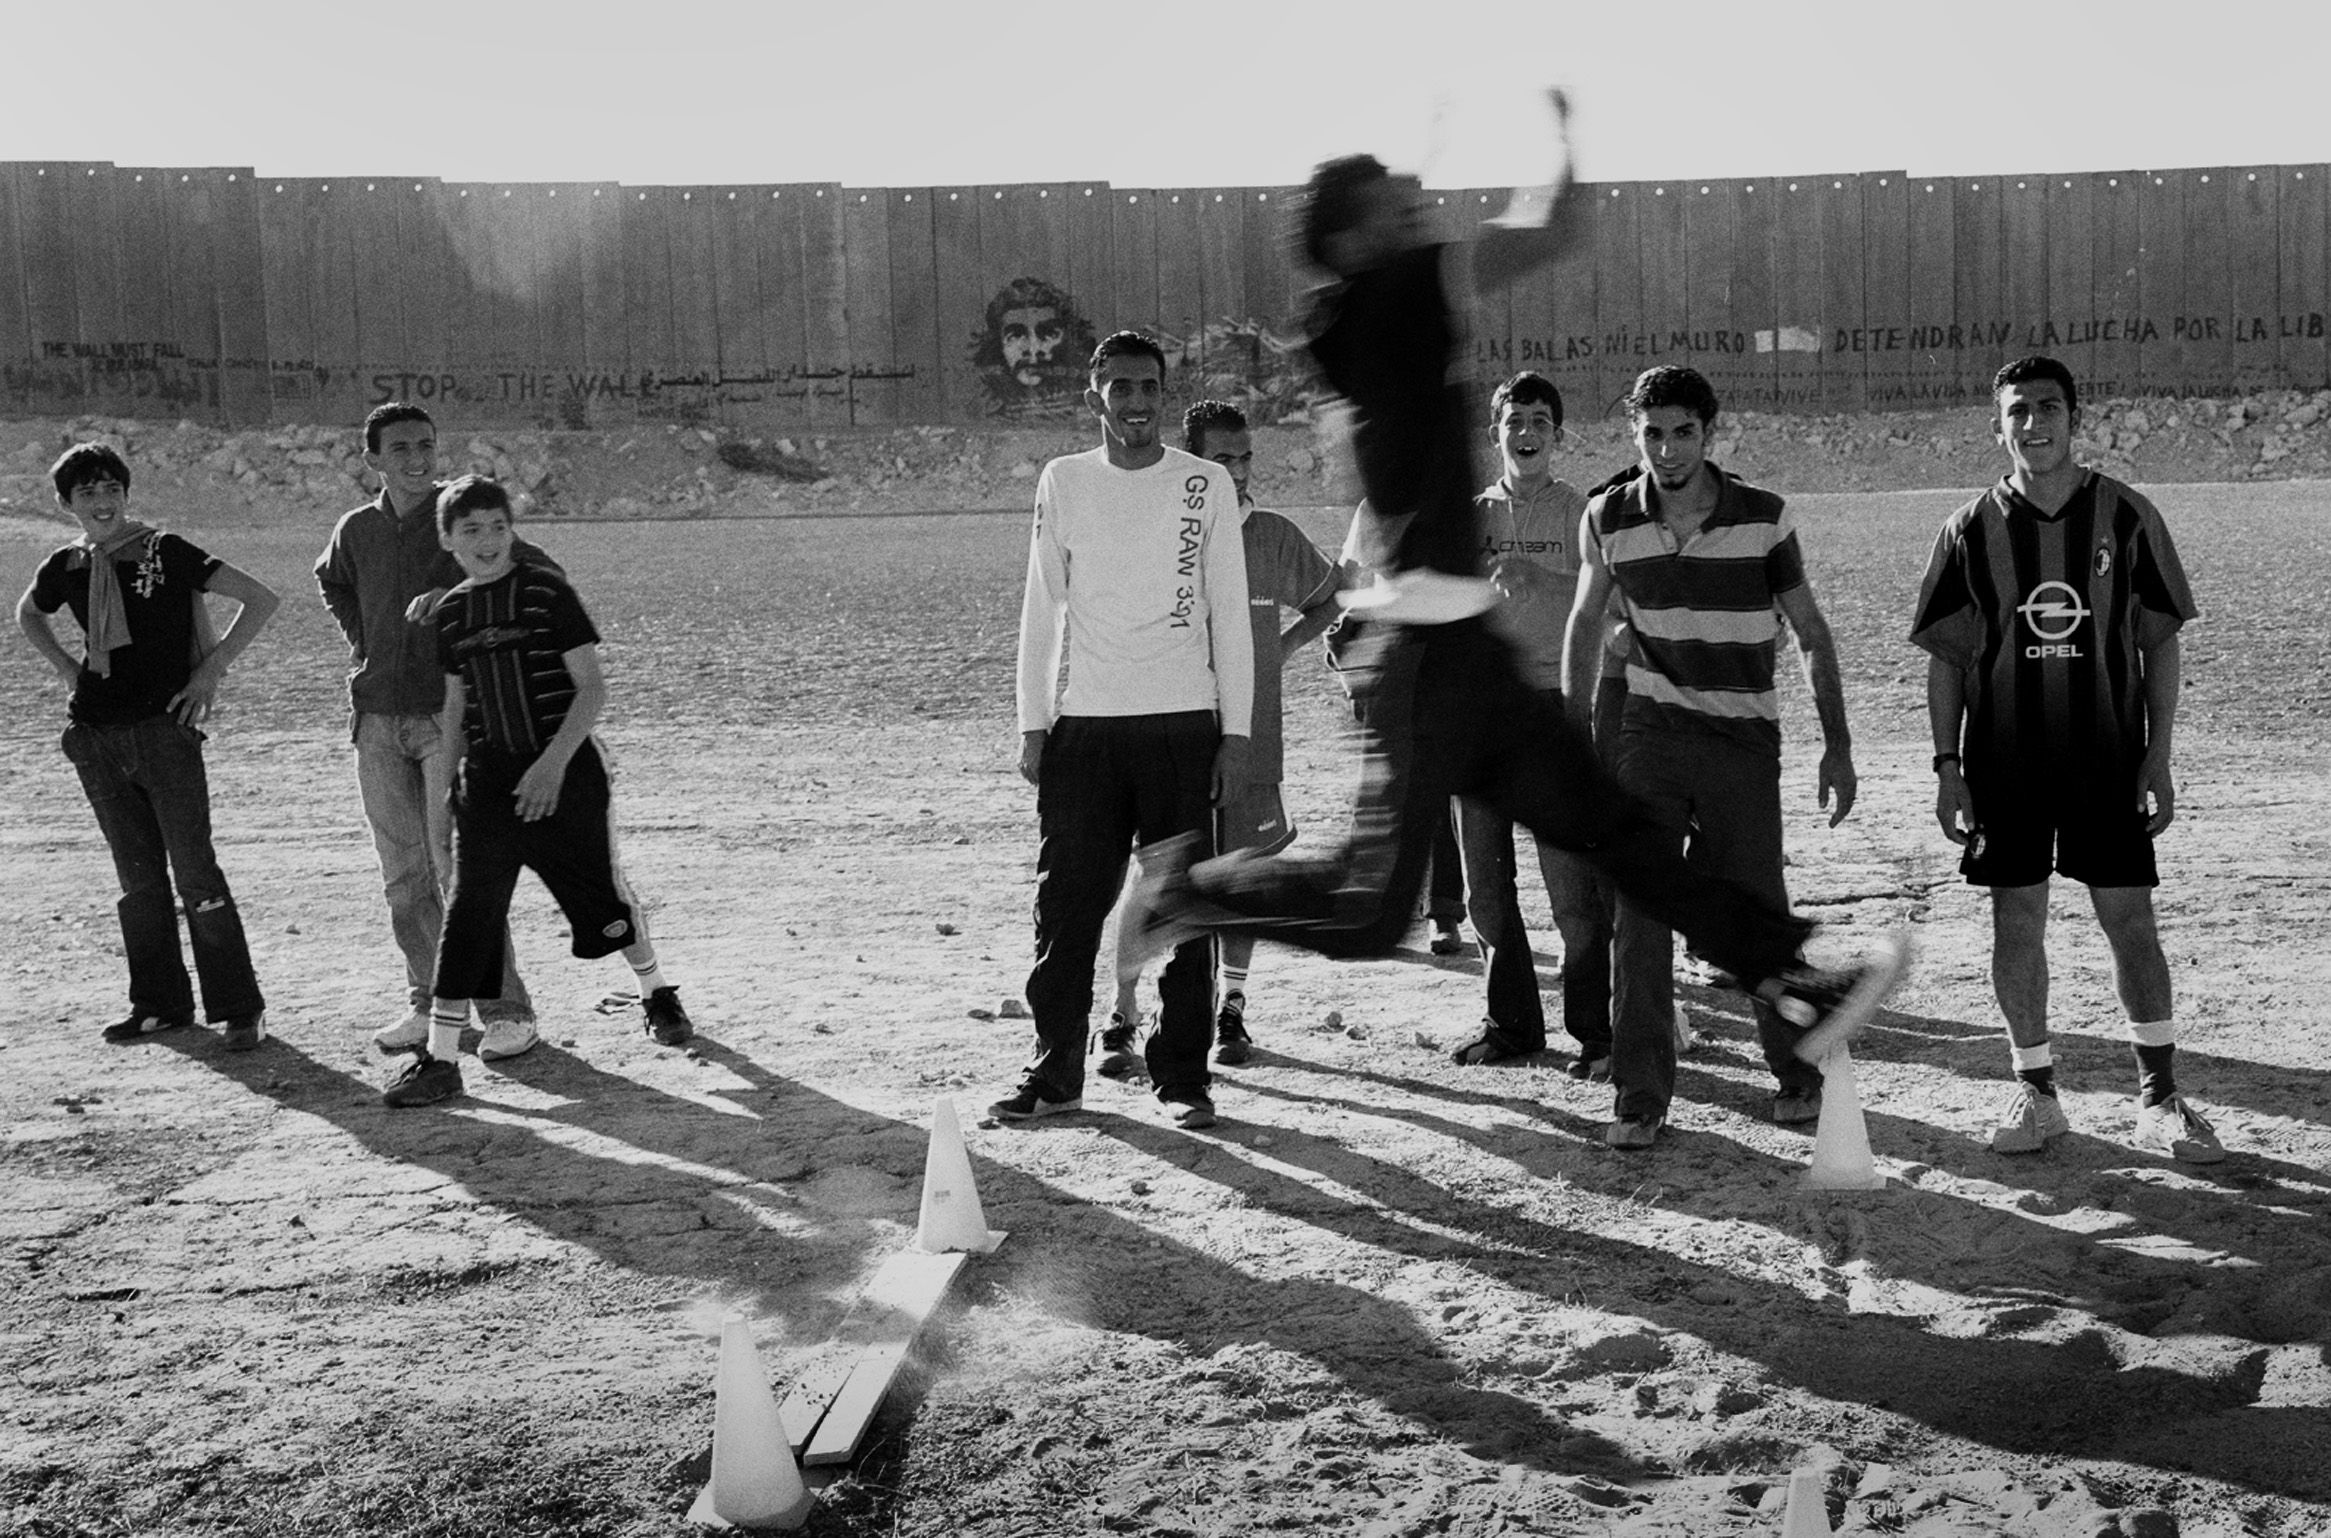 A group of youn men watch as another does a long jump in the dirt in front of a concrete wall